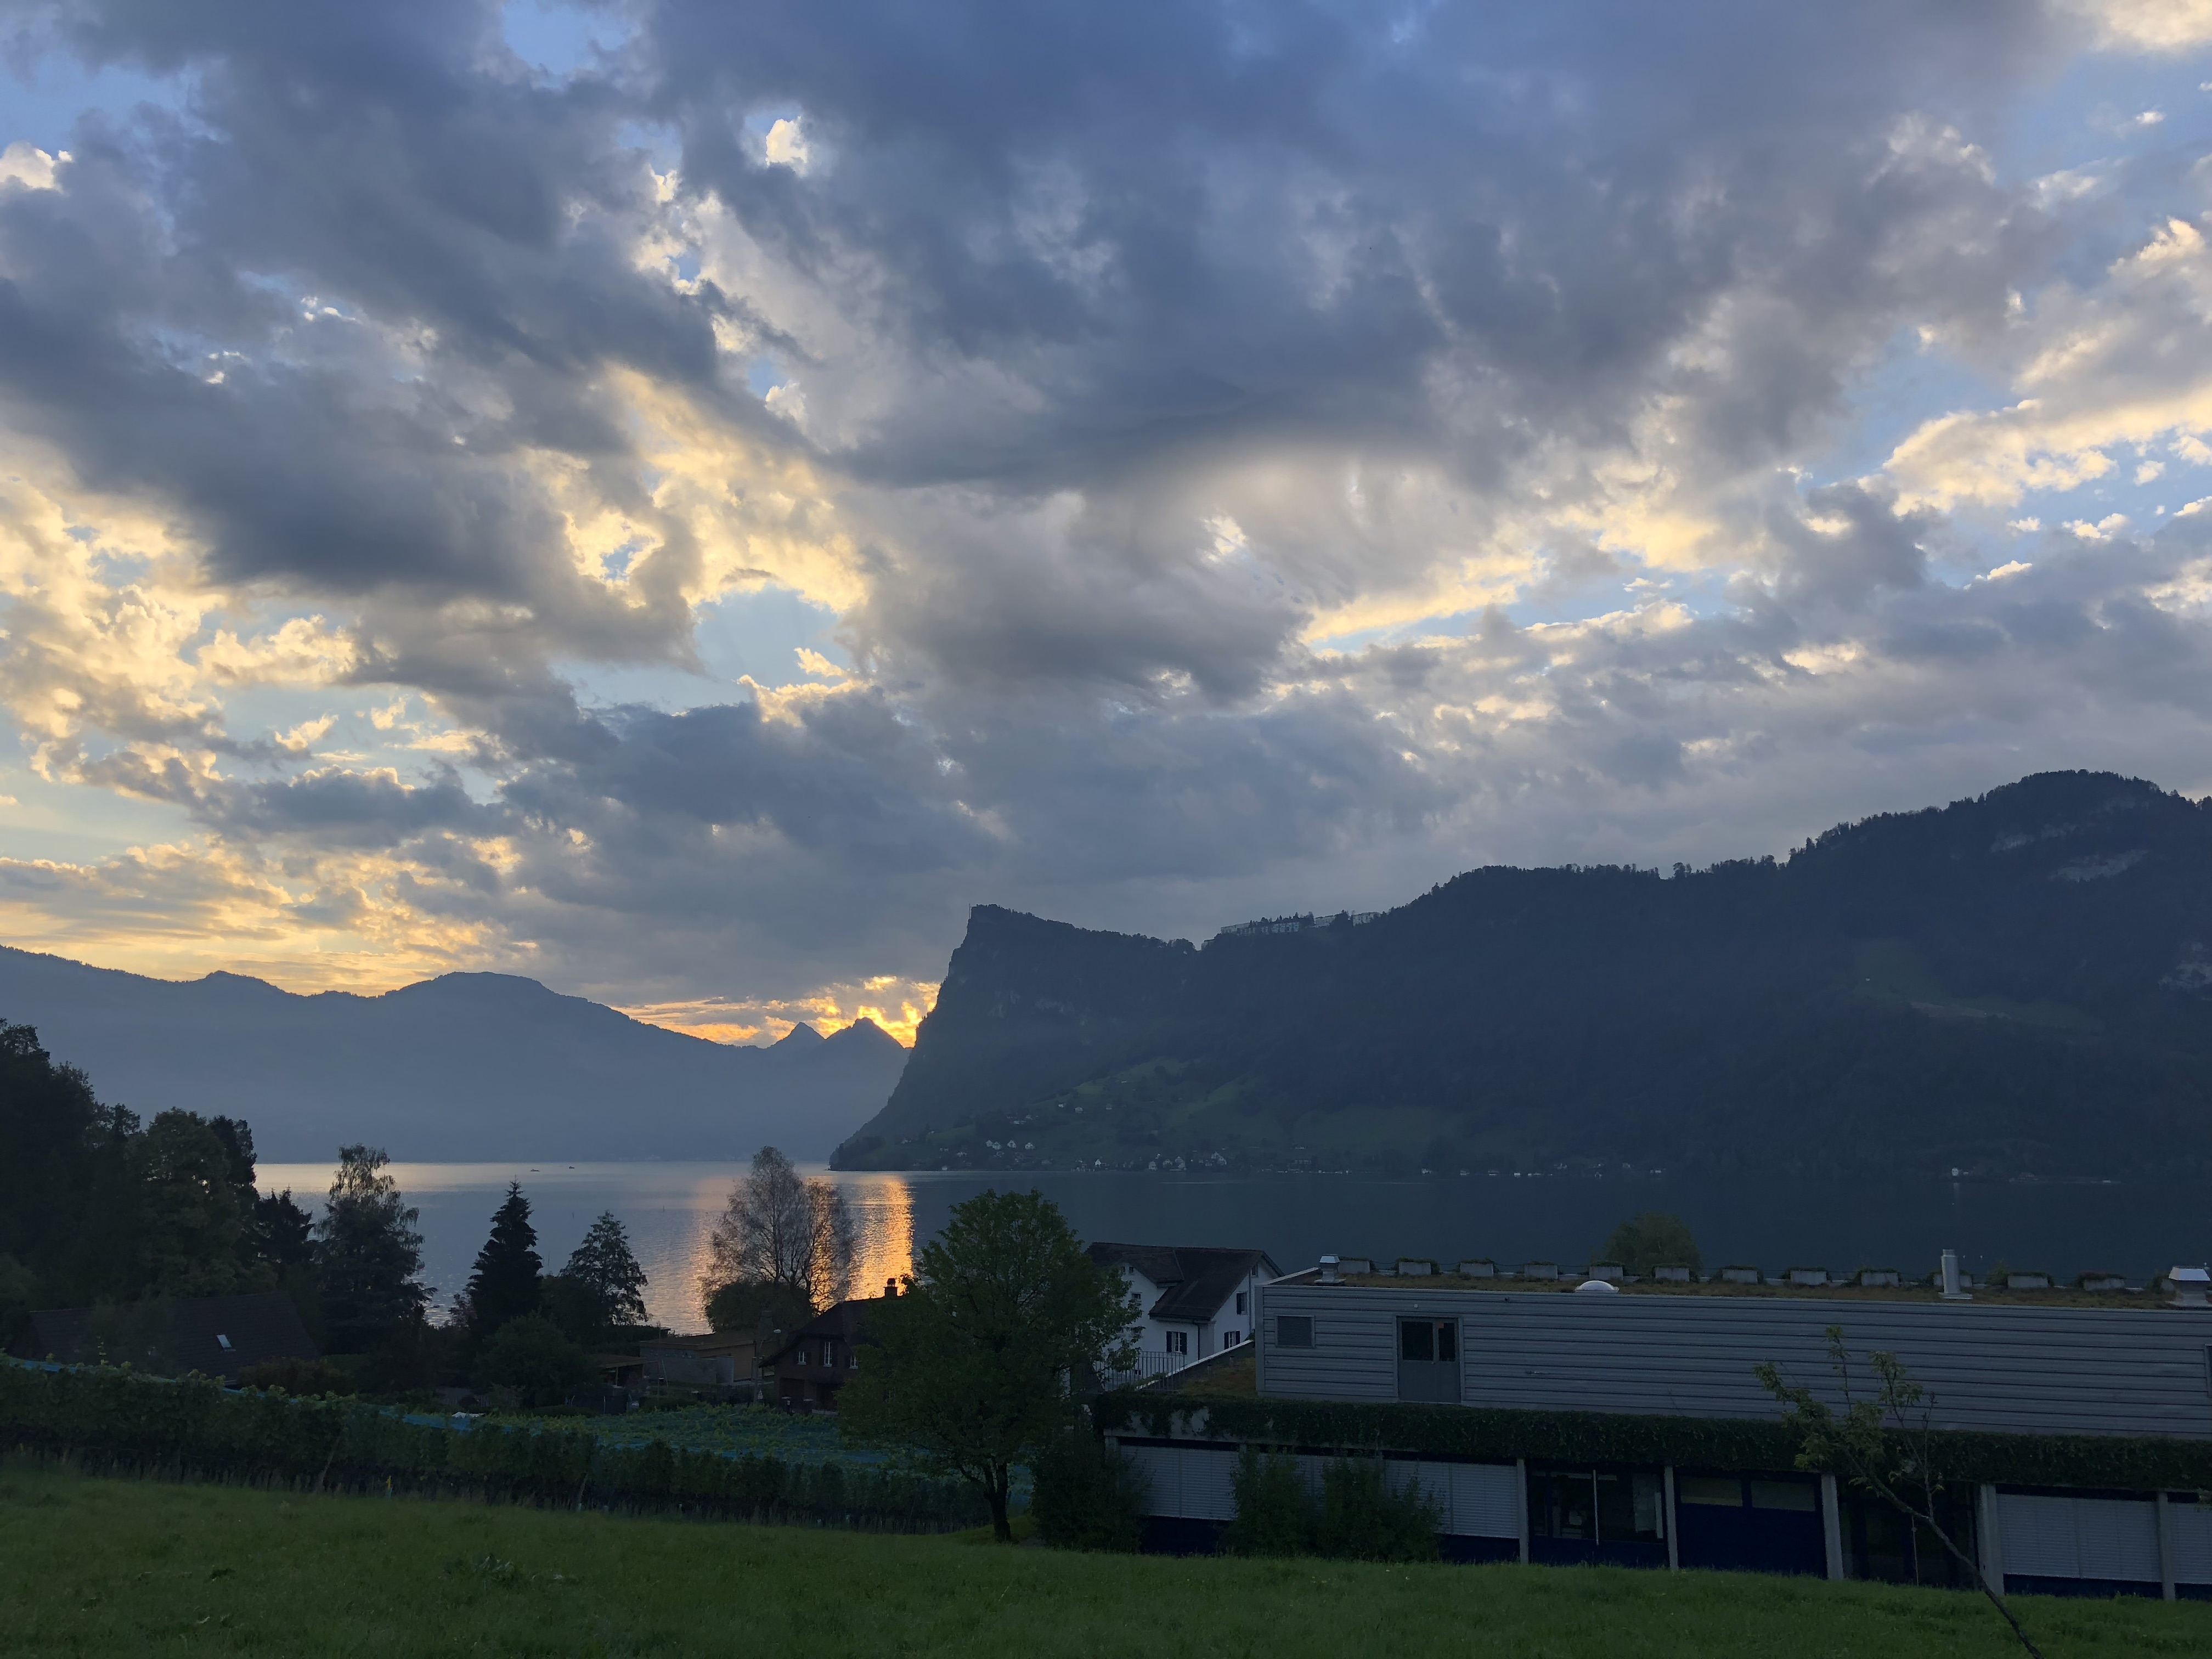 Morning view of Lake Lucerne with EAWAG in the foreground.